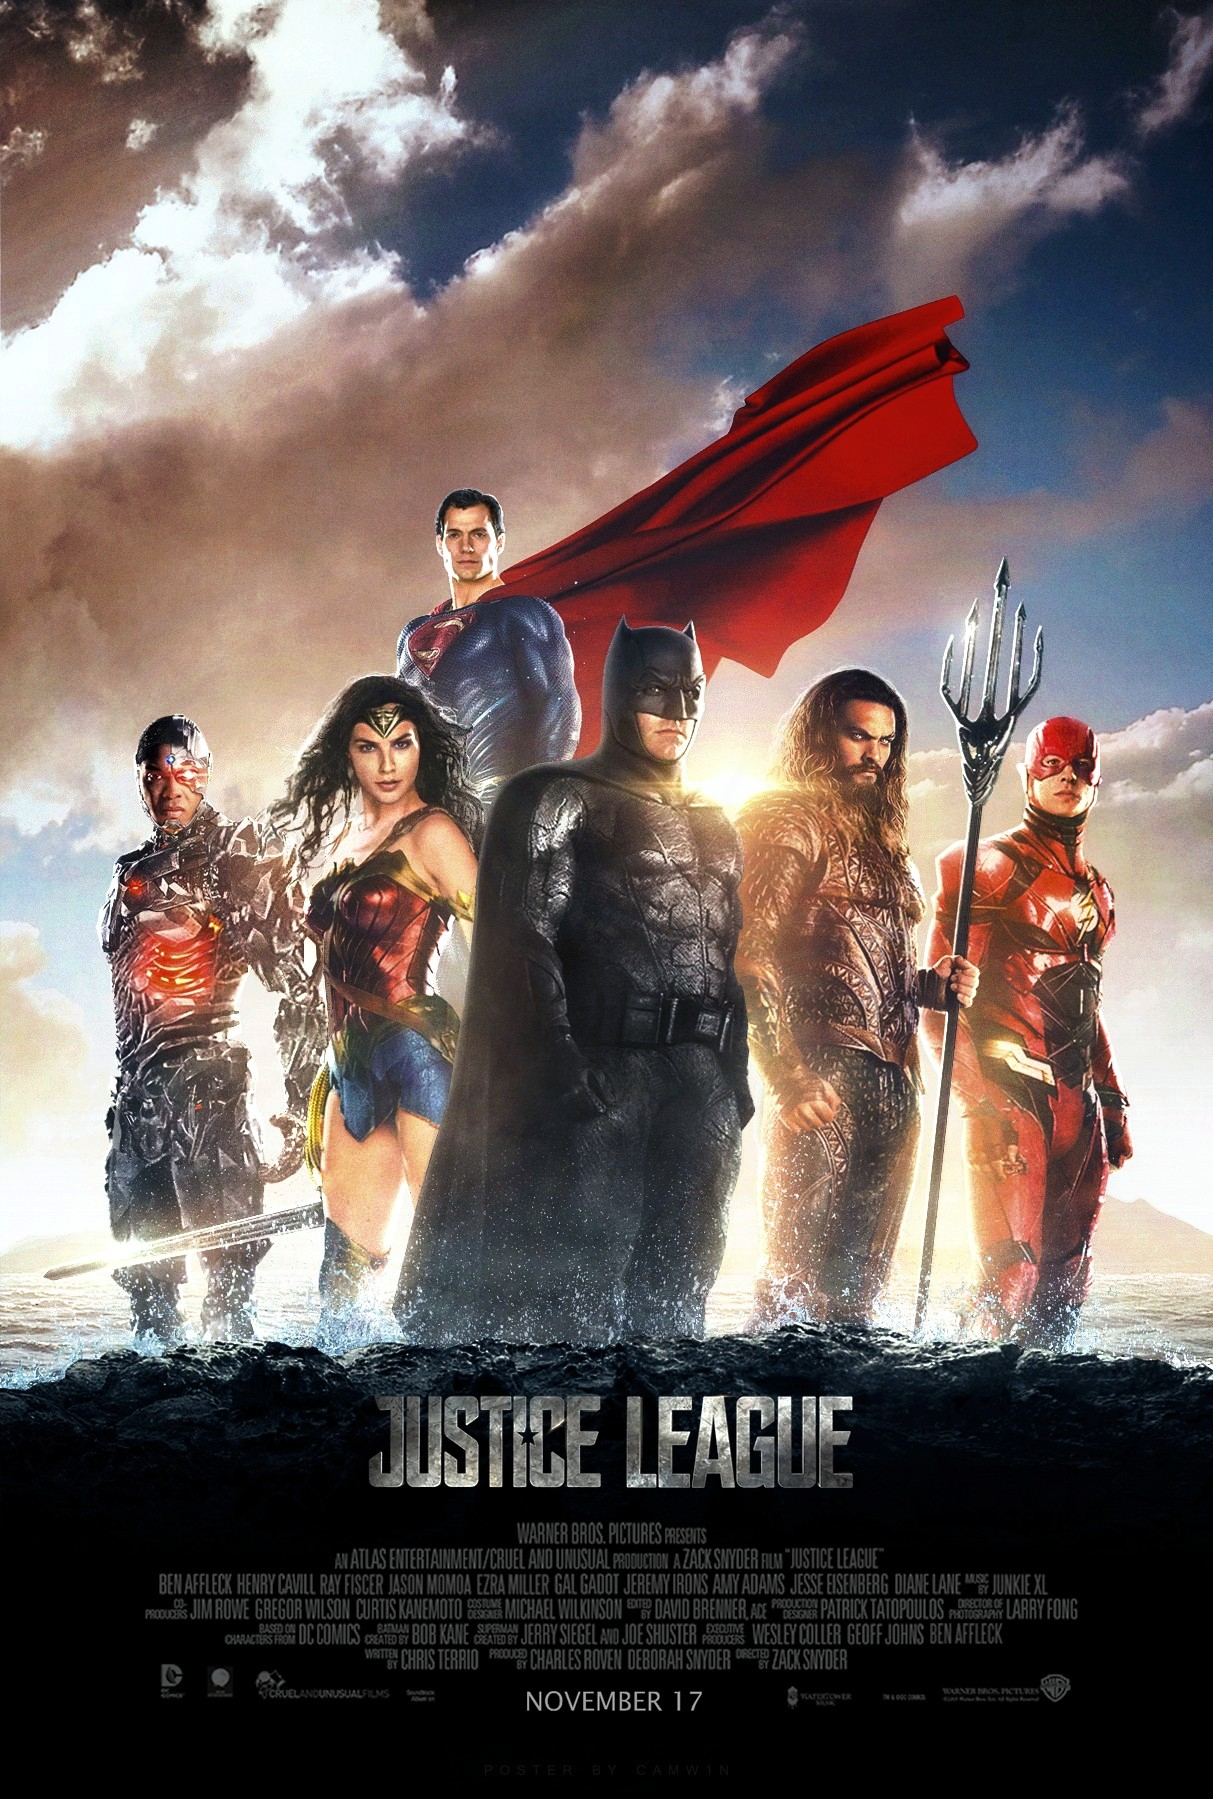 Justice League (2017) - Poster #2 by CAMW1N on DeviantArt